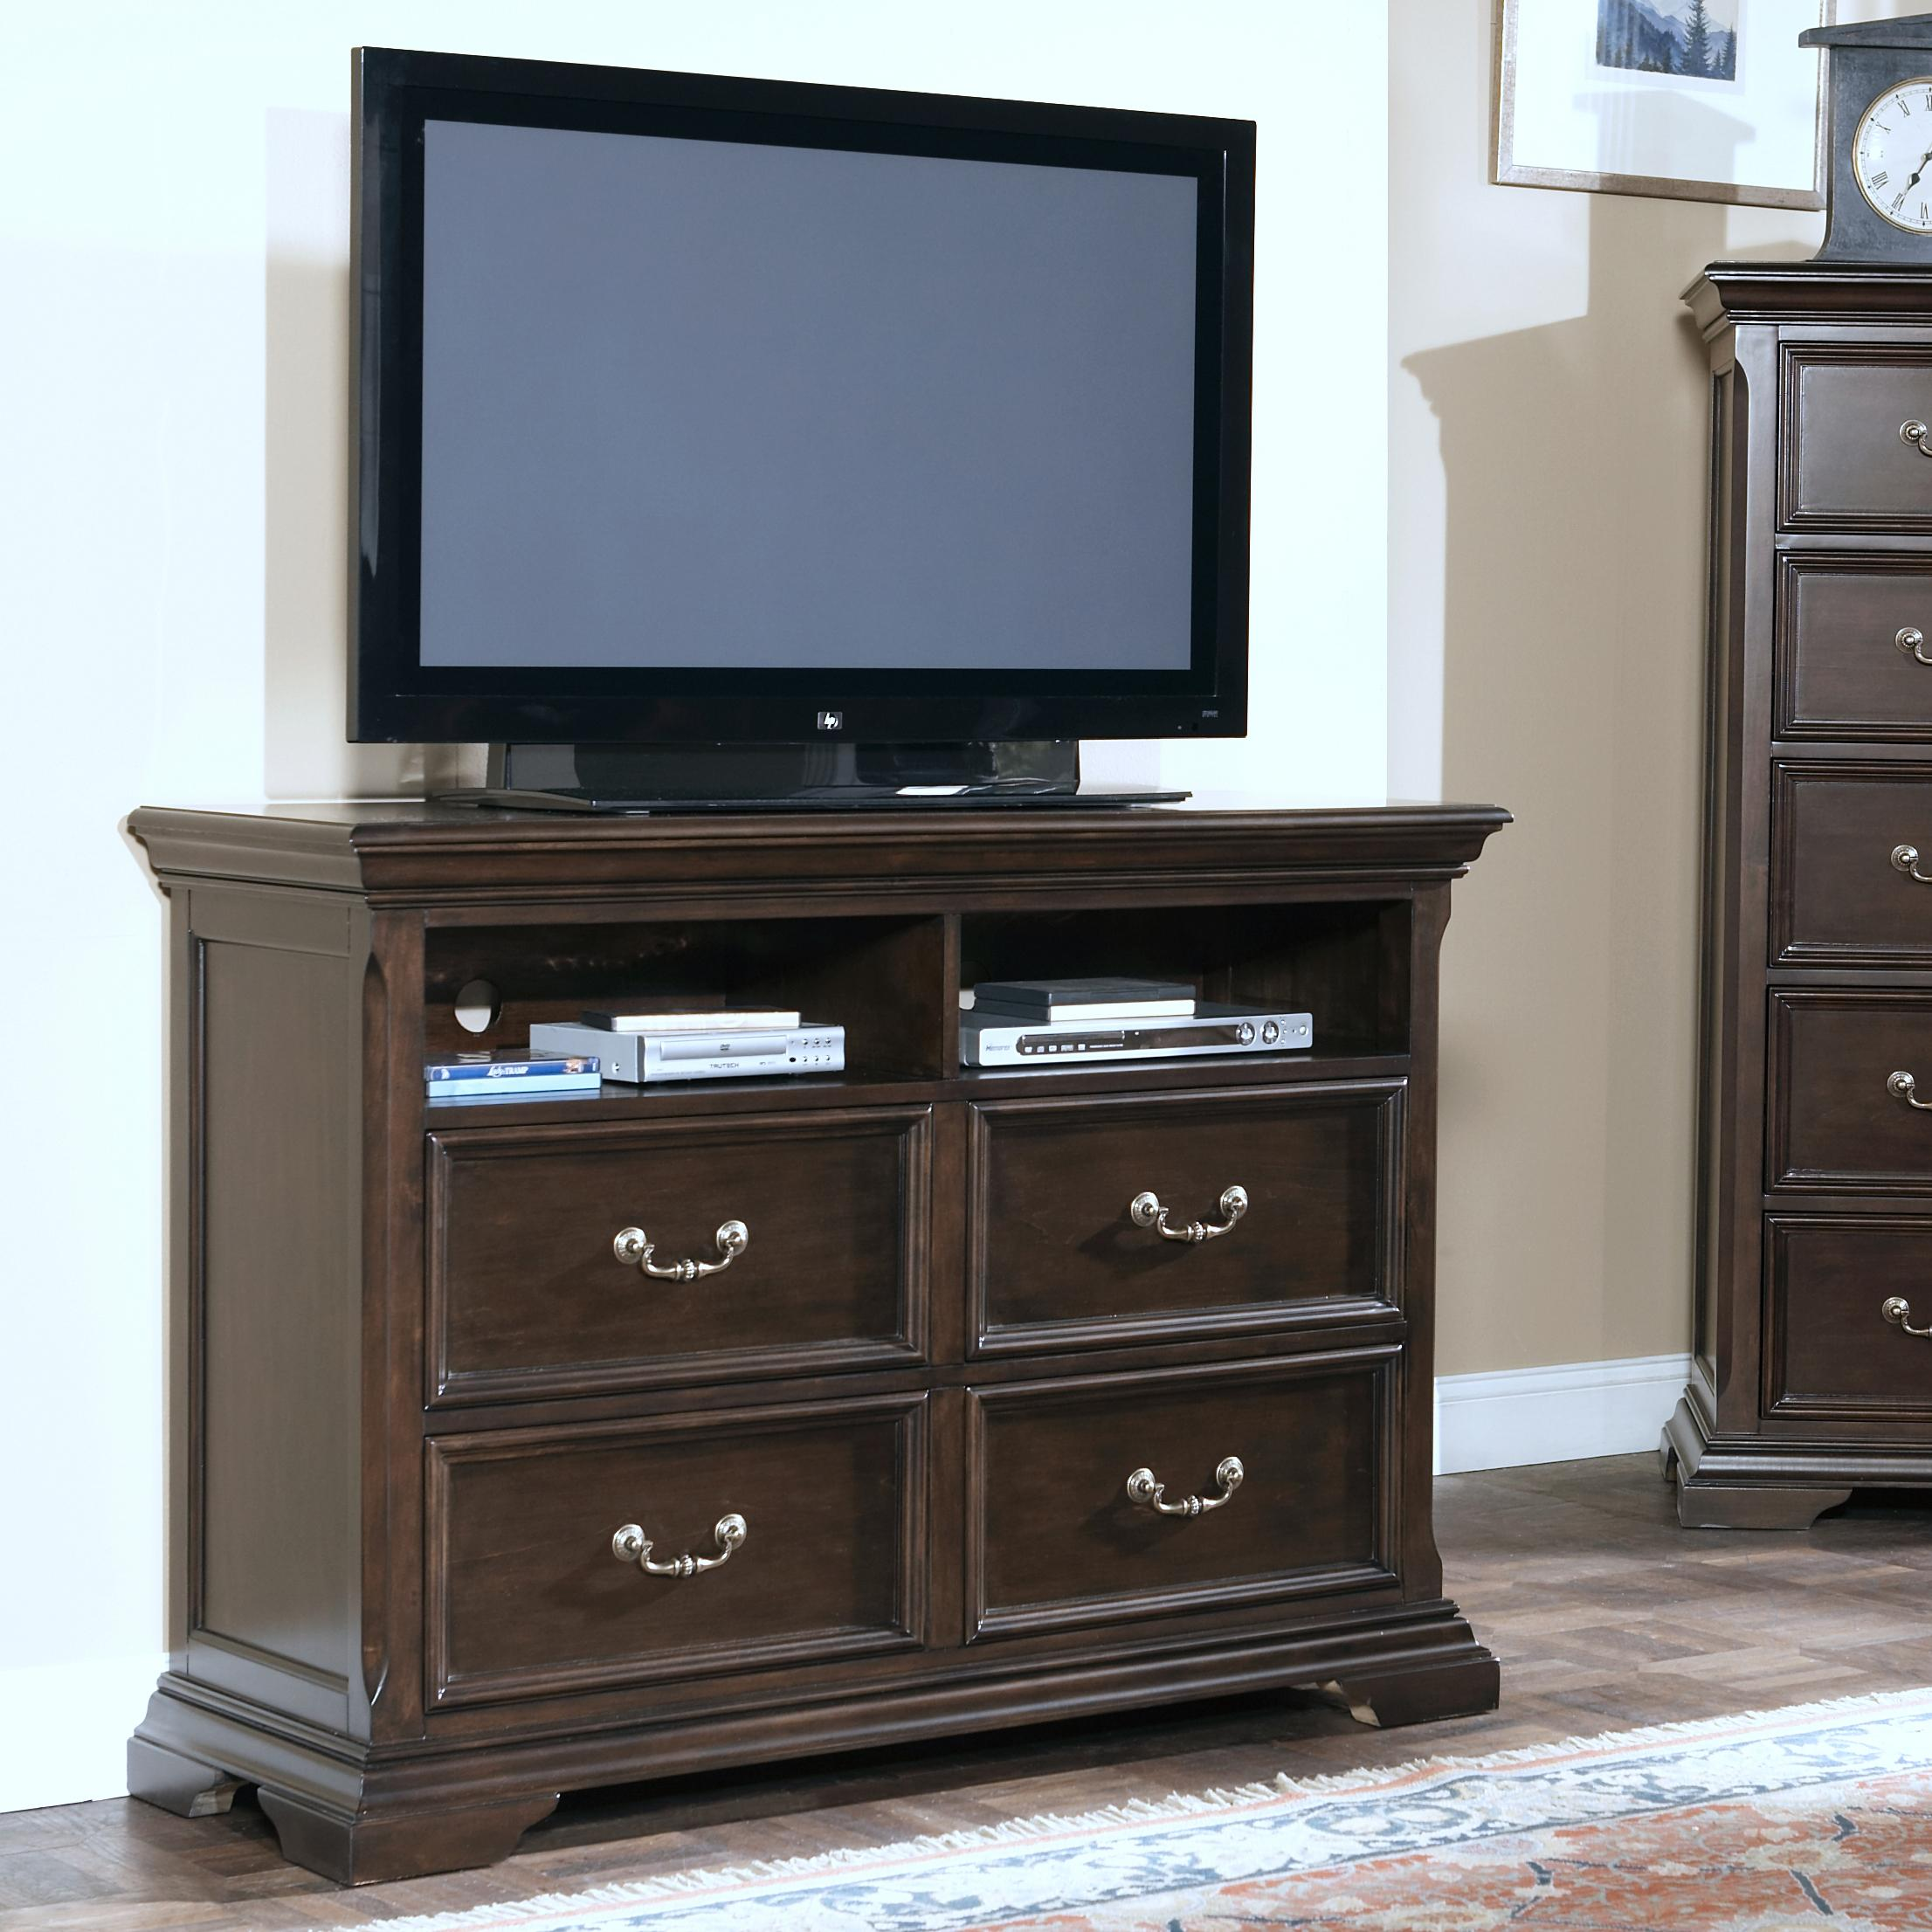 New Classic Timber City Four Drawer Media Chest - Item Number: 00-007-078